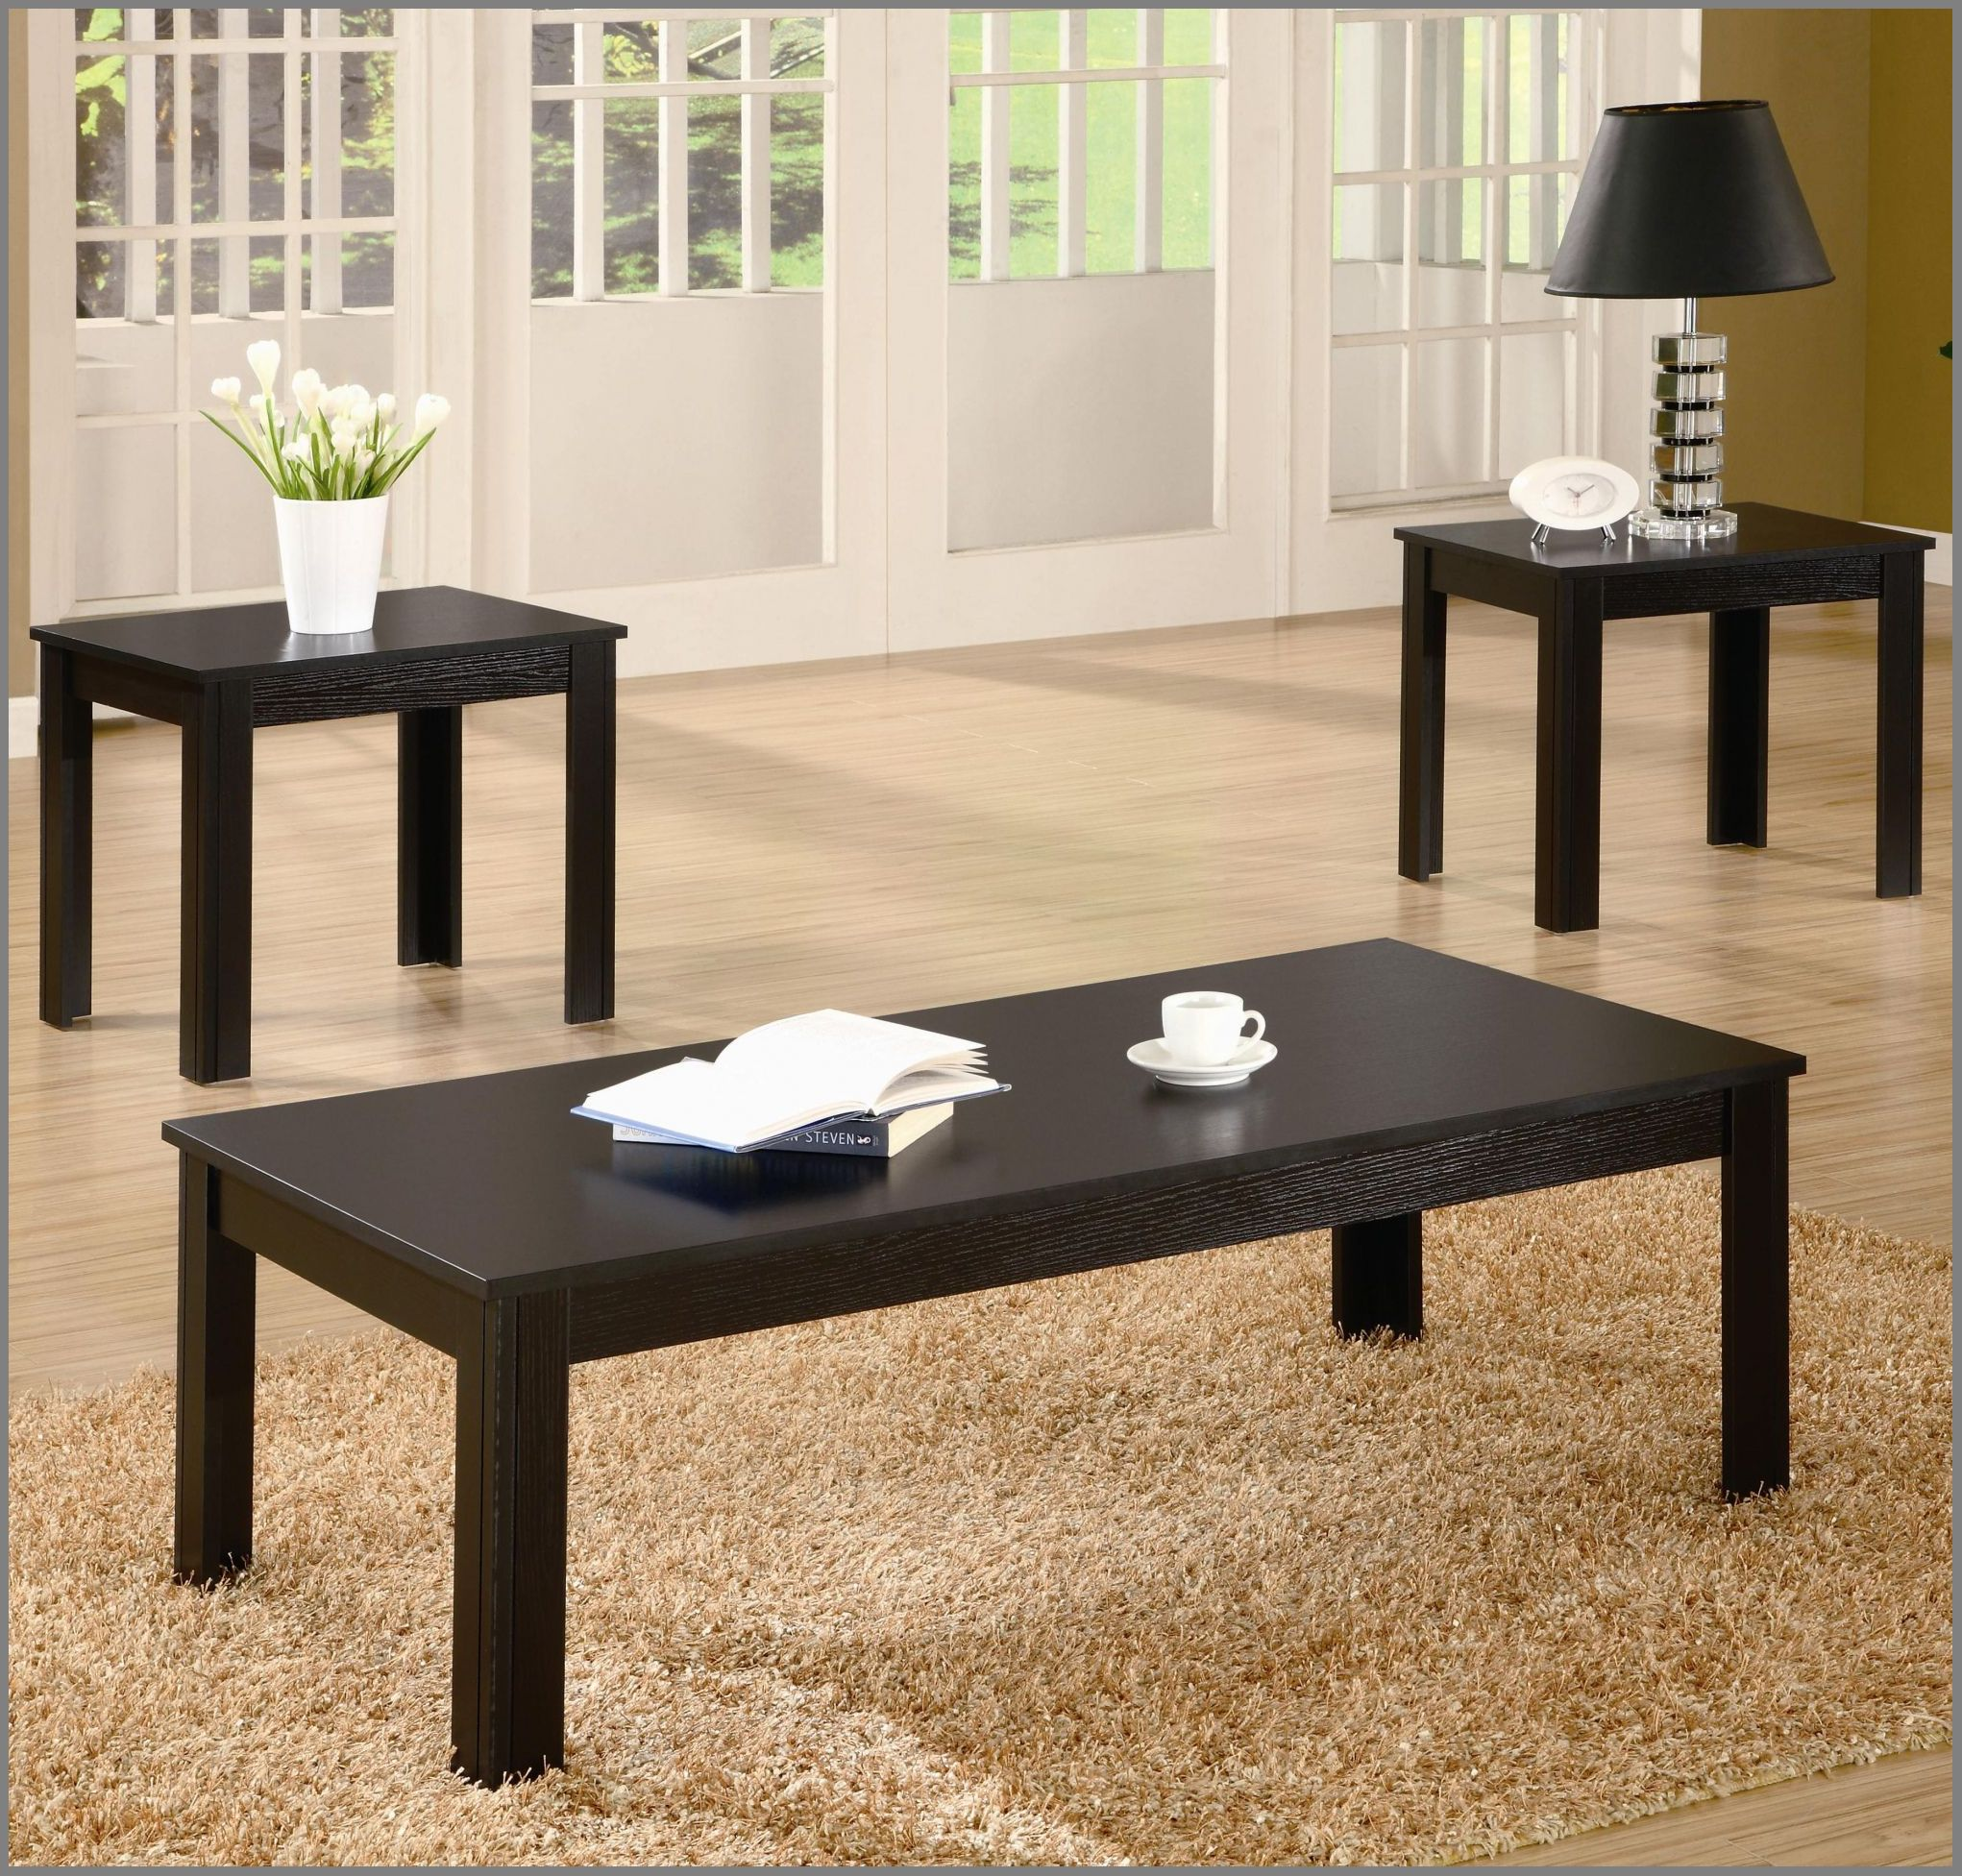 wonderfull one coffee table and two end tables boroughs piece charming complete living room sets check more black ashley furniture distribution big lots gaming chair thomasville